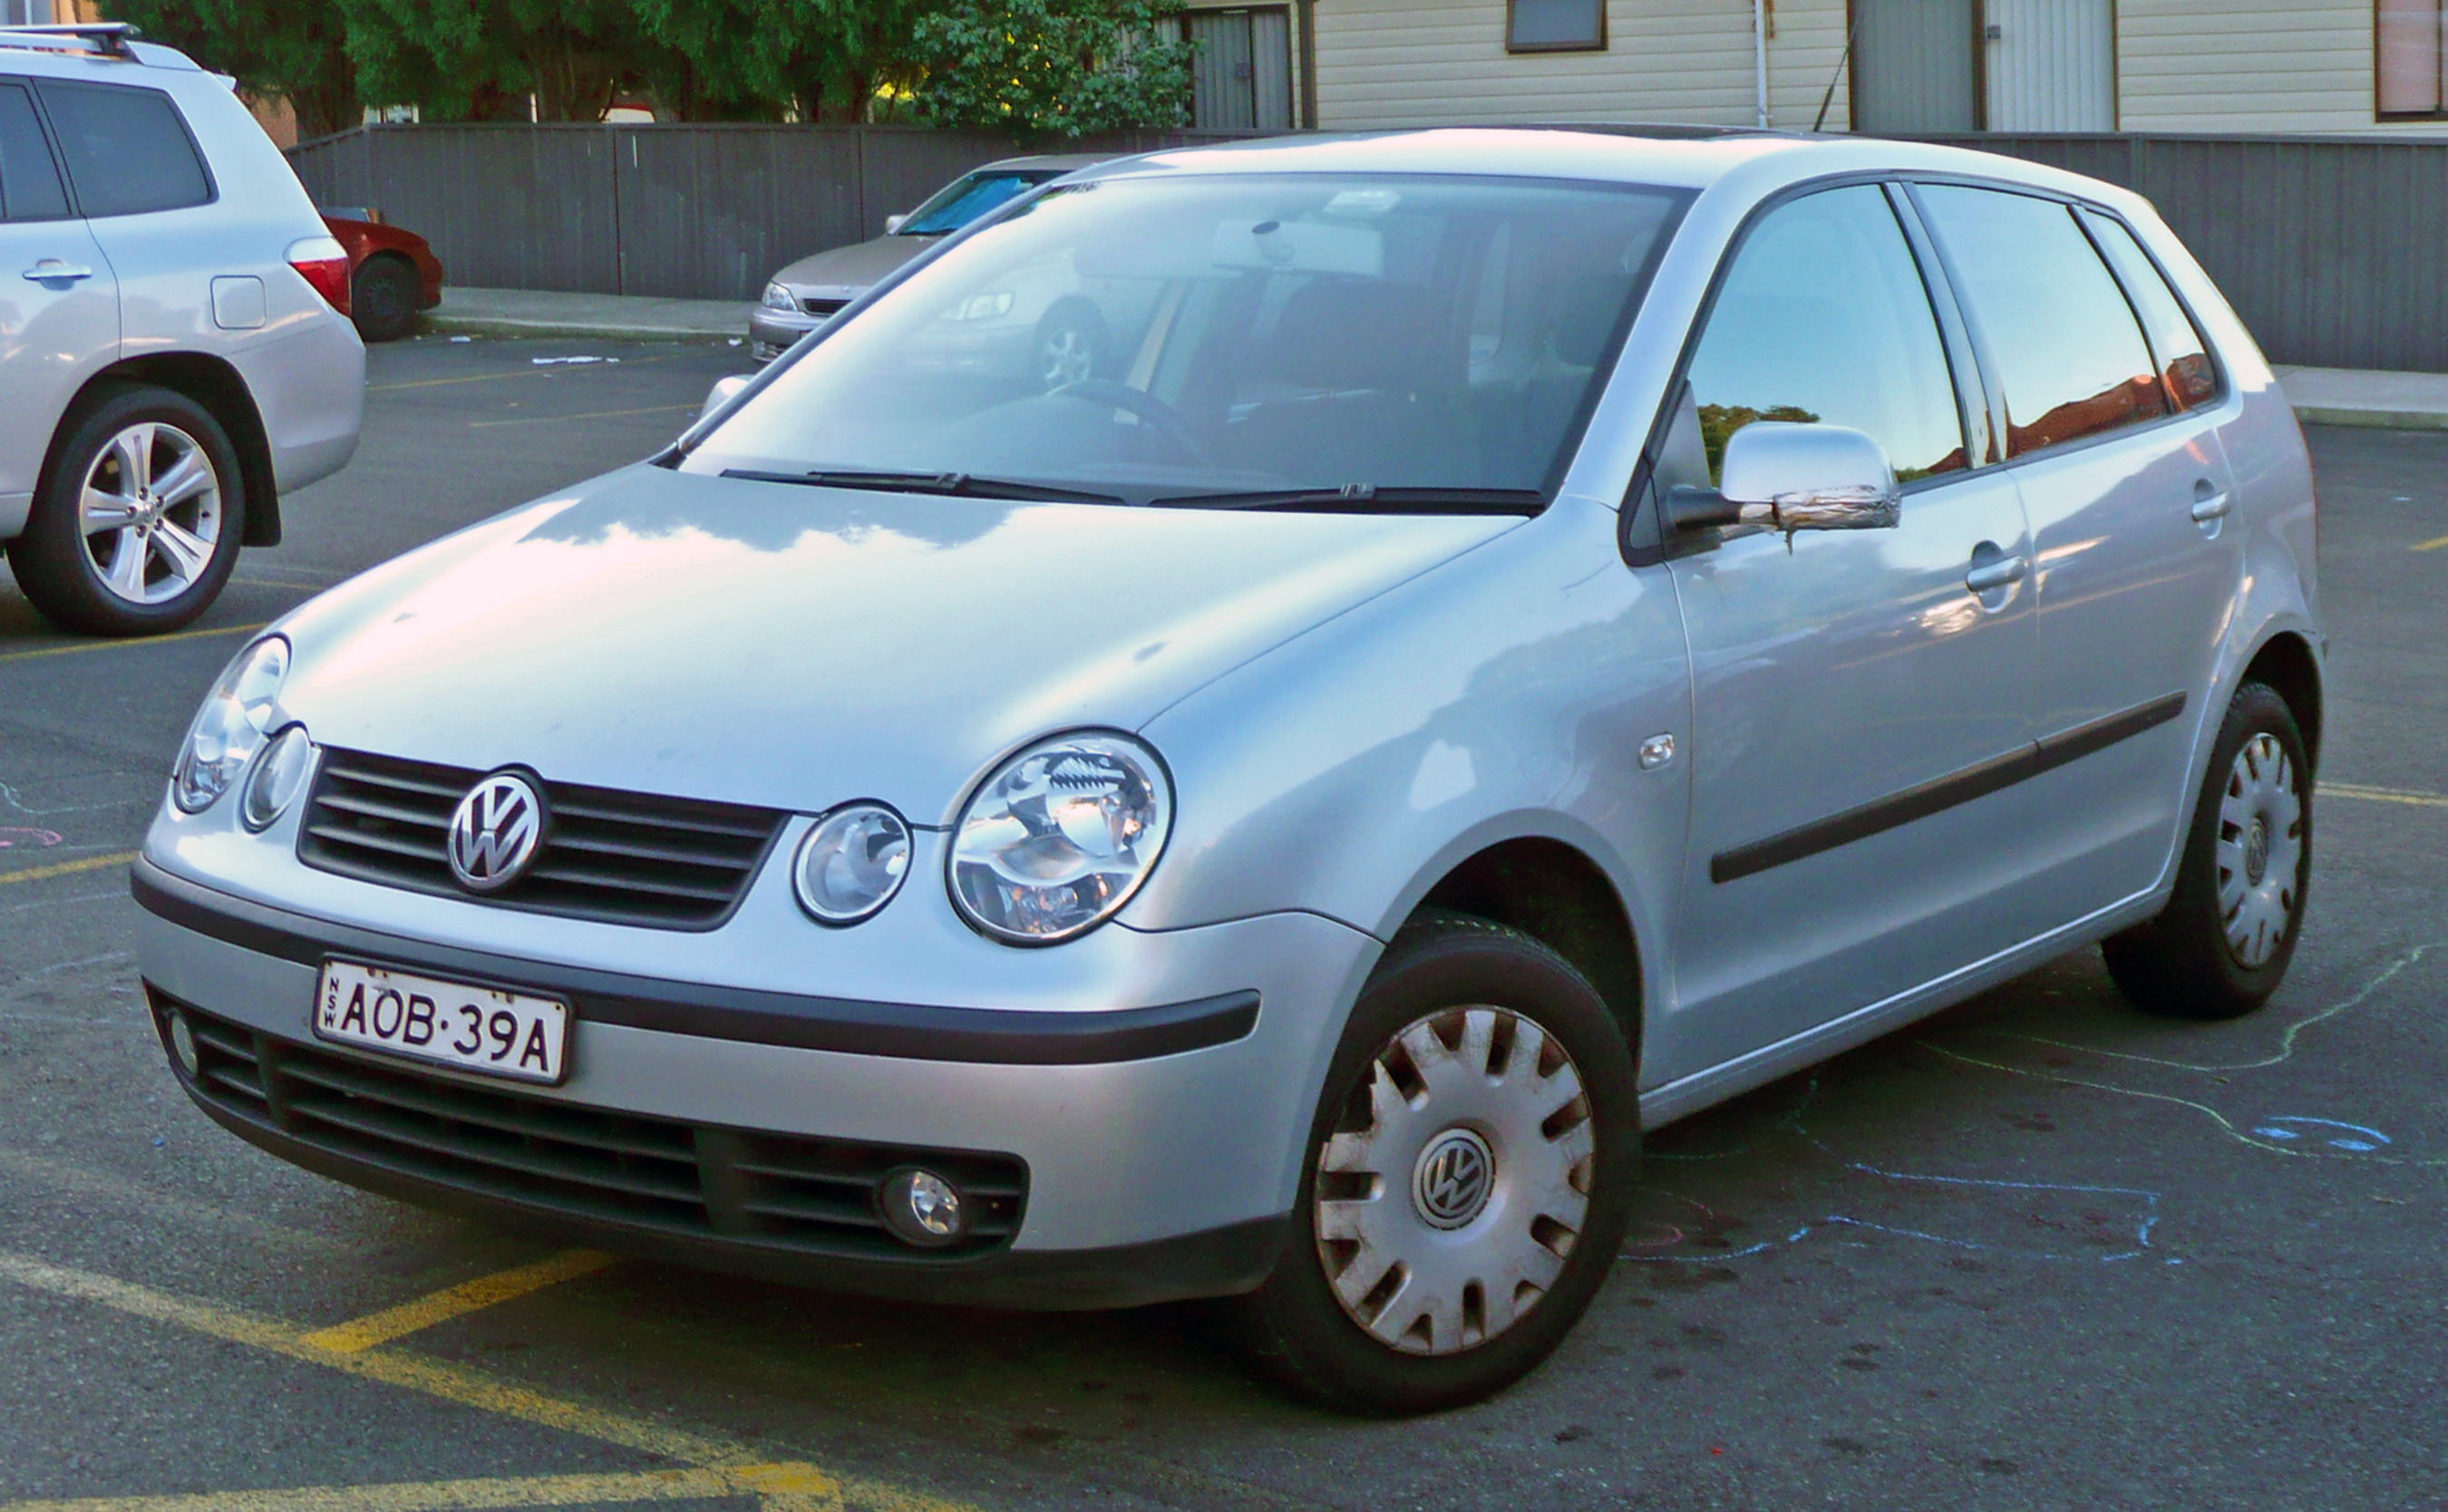 2001 Volkswagen Polo Hatchback 5-door